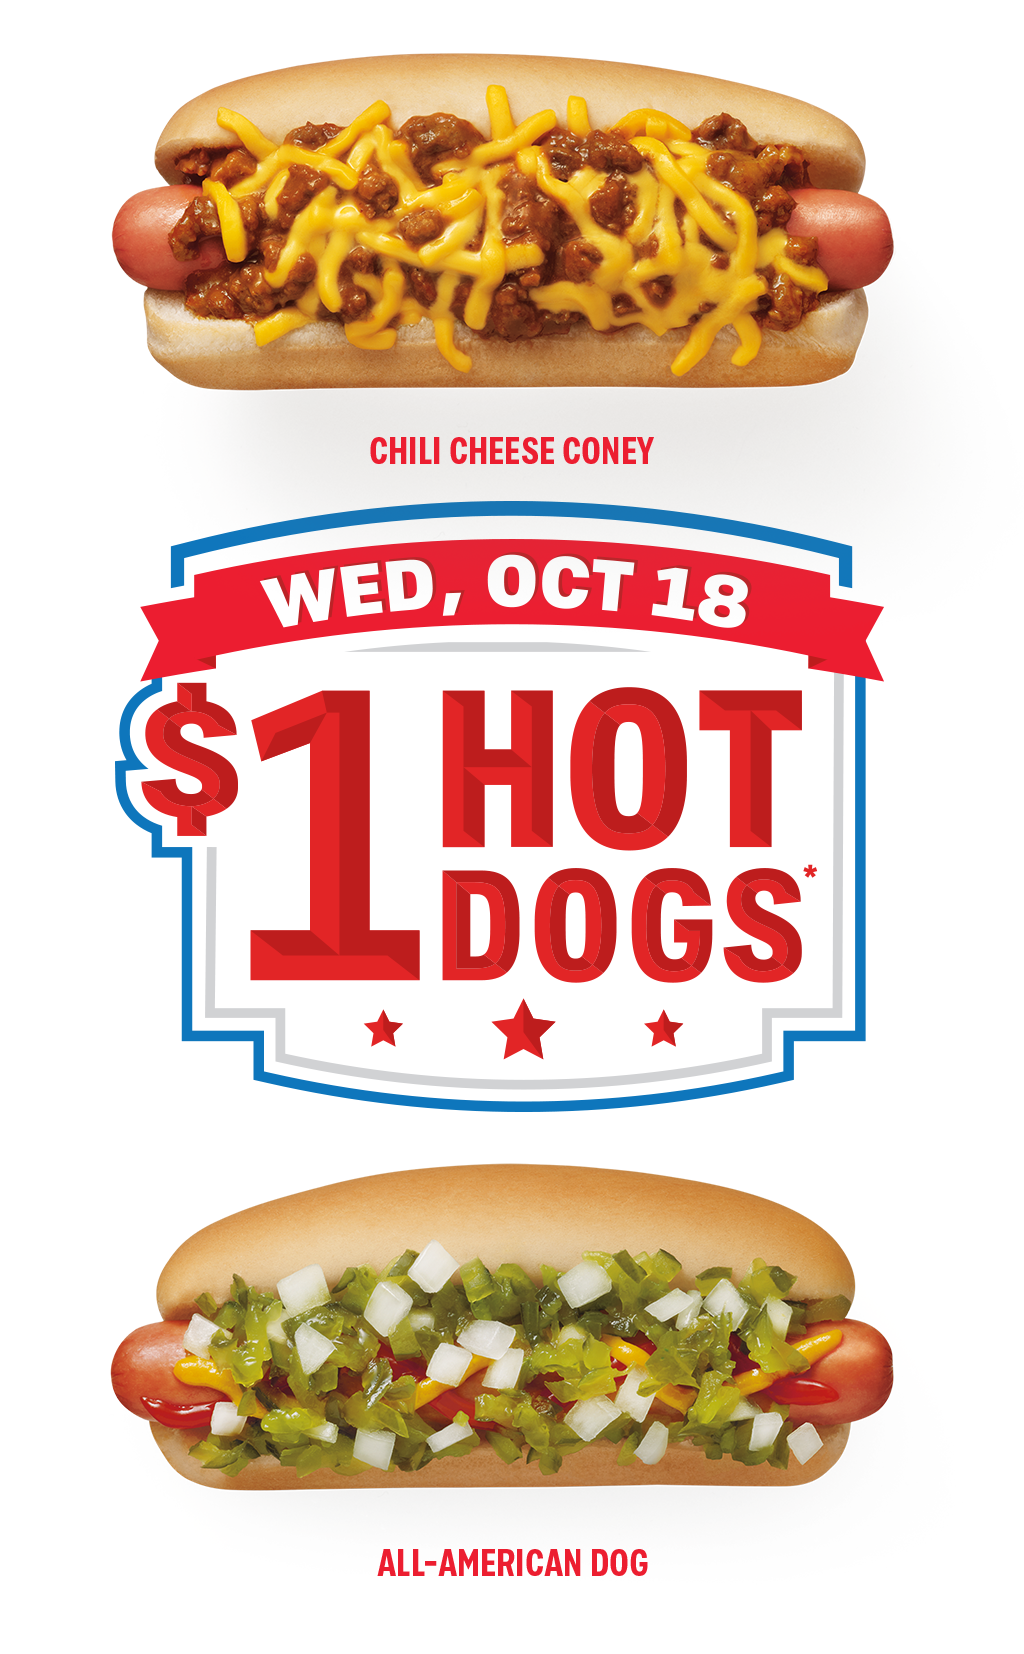 Enjoy $1 All American and Chili Cheese Coneys all day Oct. 18!